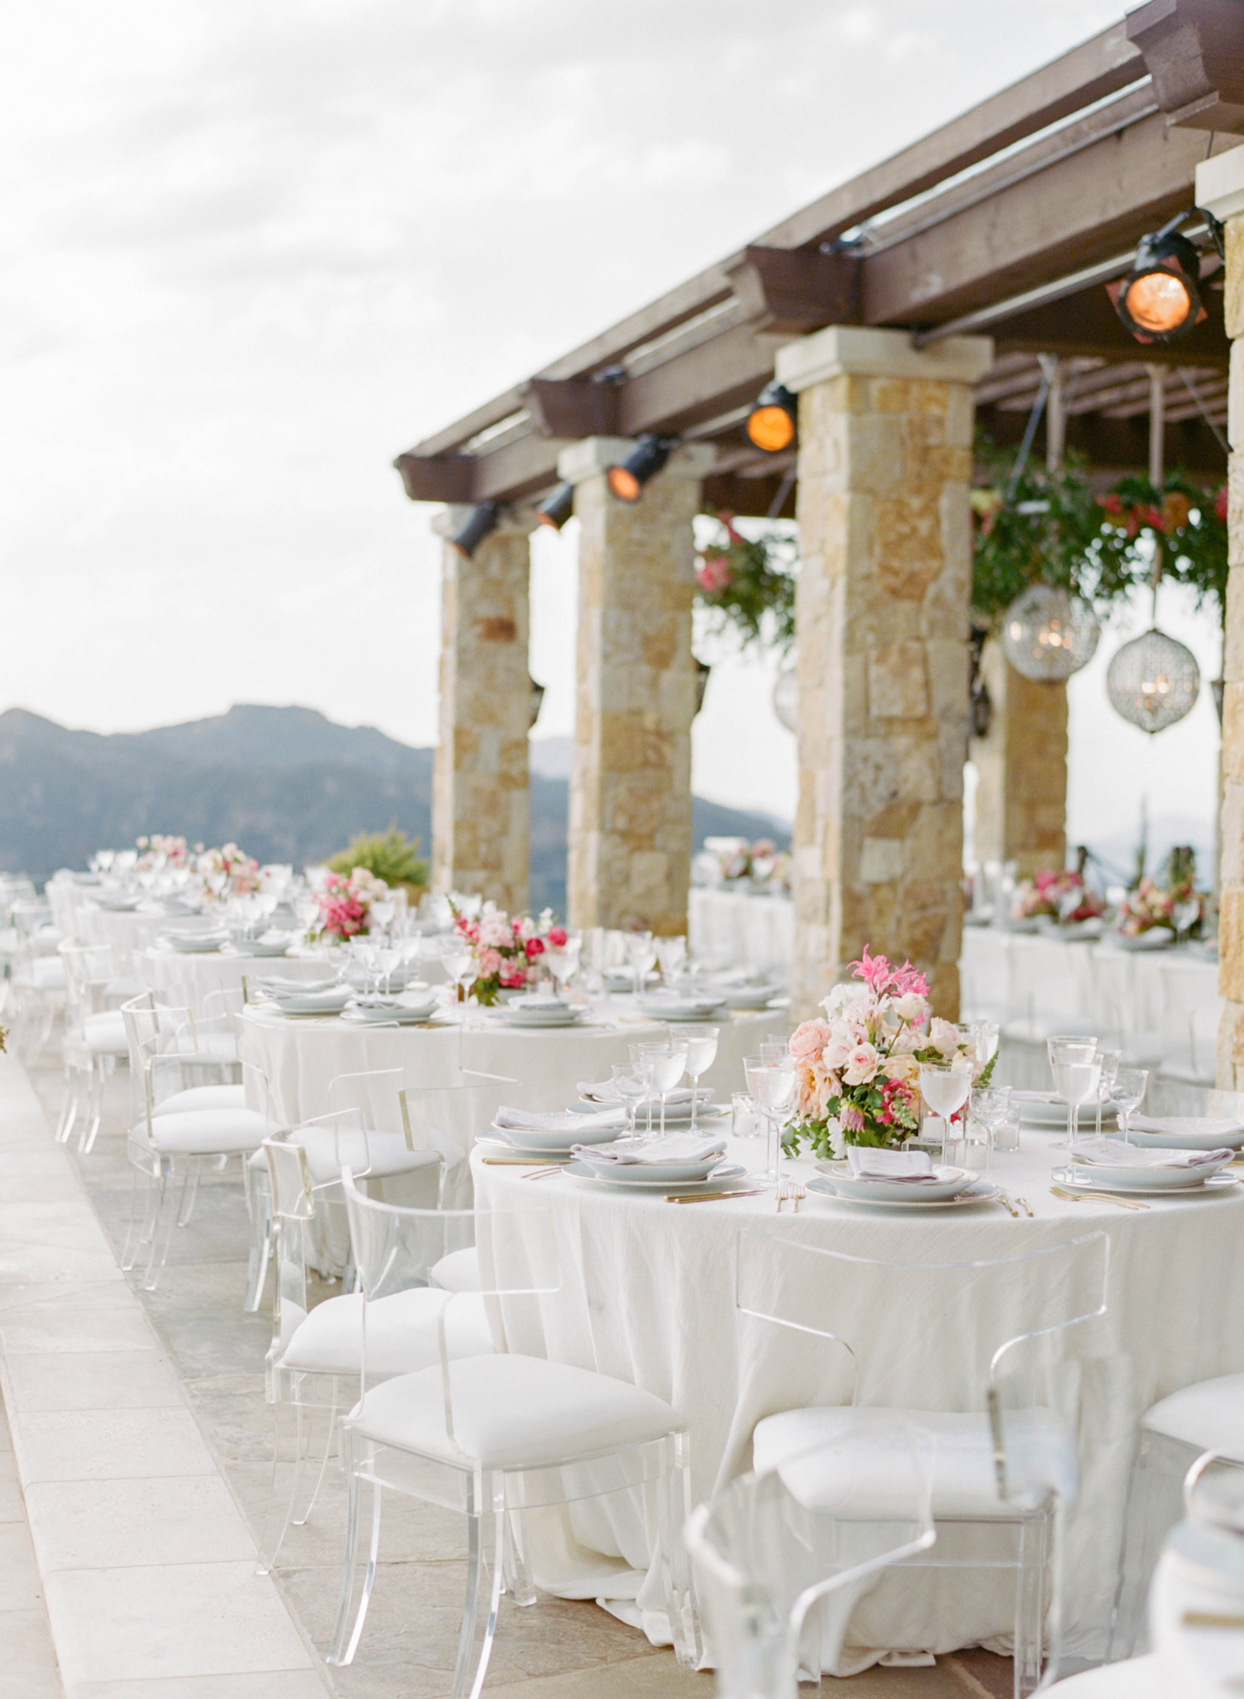 round reception tables adorned with pink floral centerpieces overlooking mountains